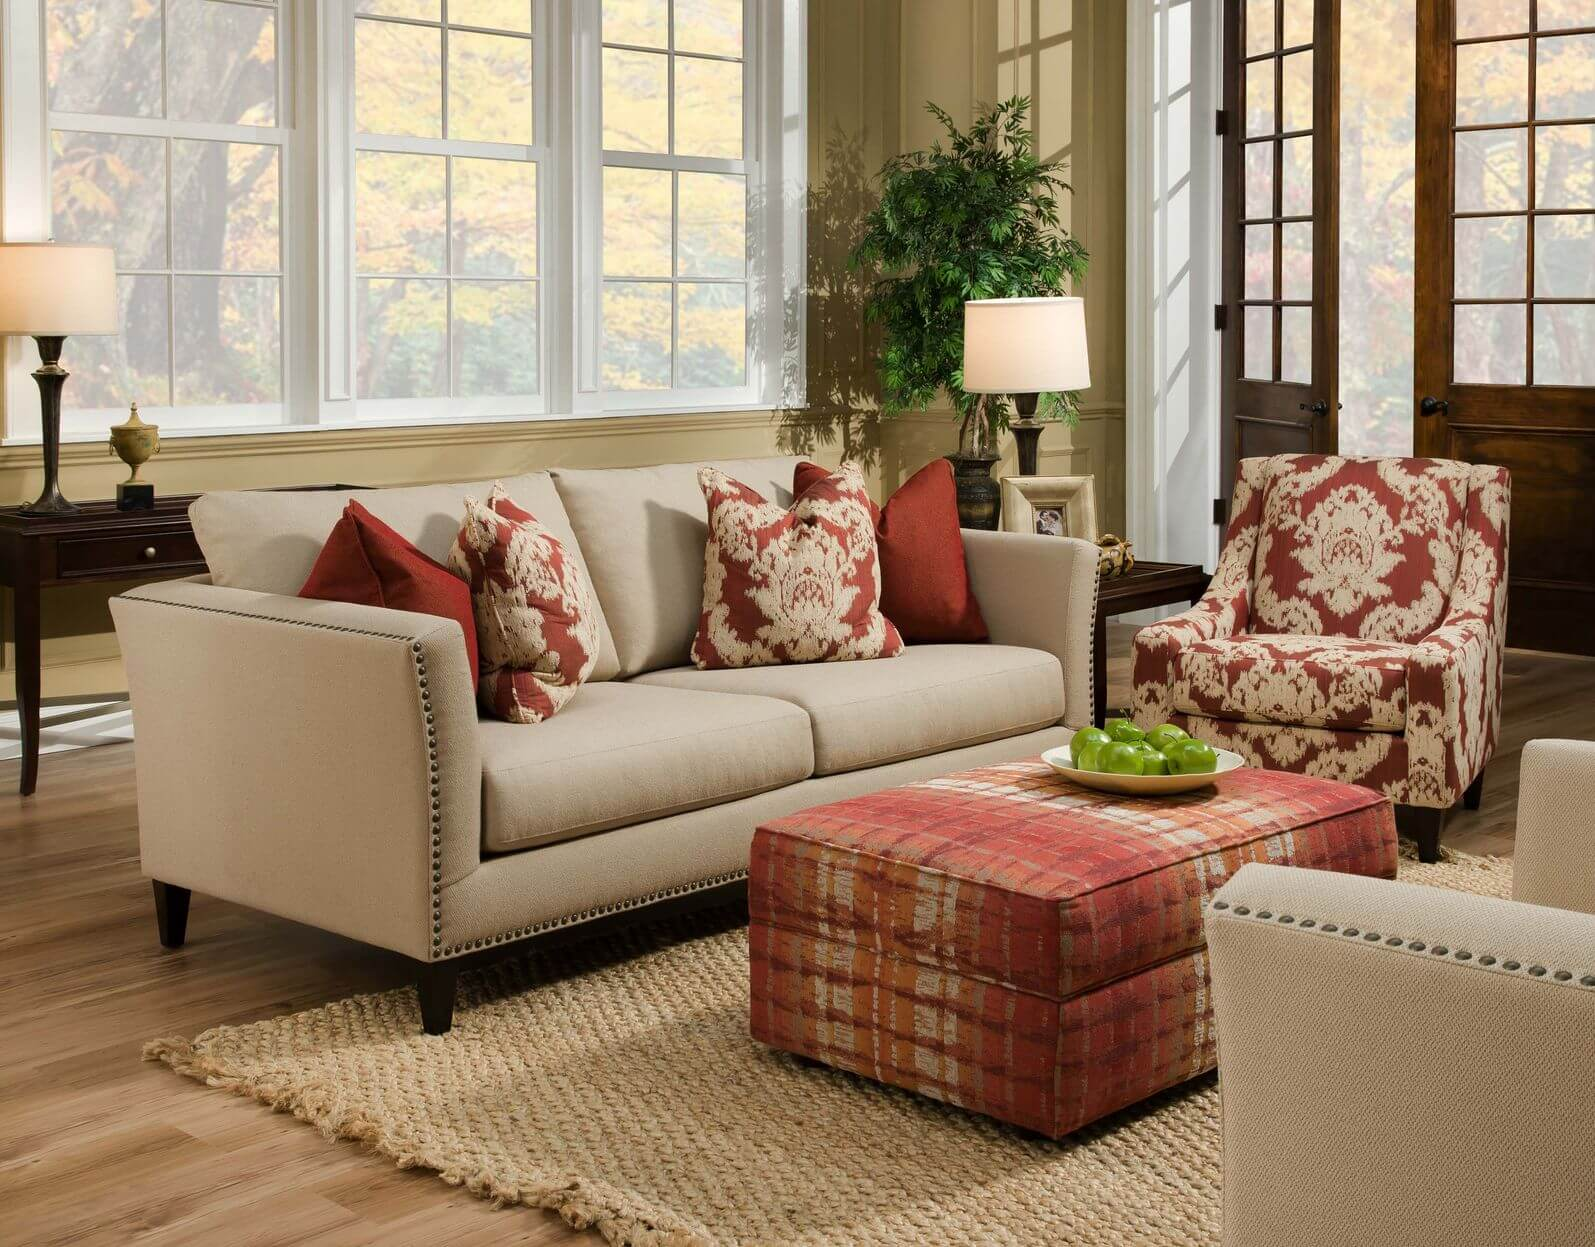 beige twin couches face each other over natural hardwood flooring and tan rug in this living